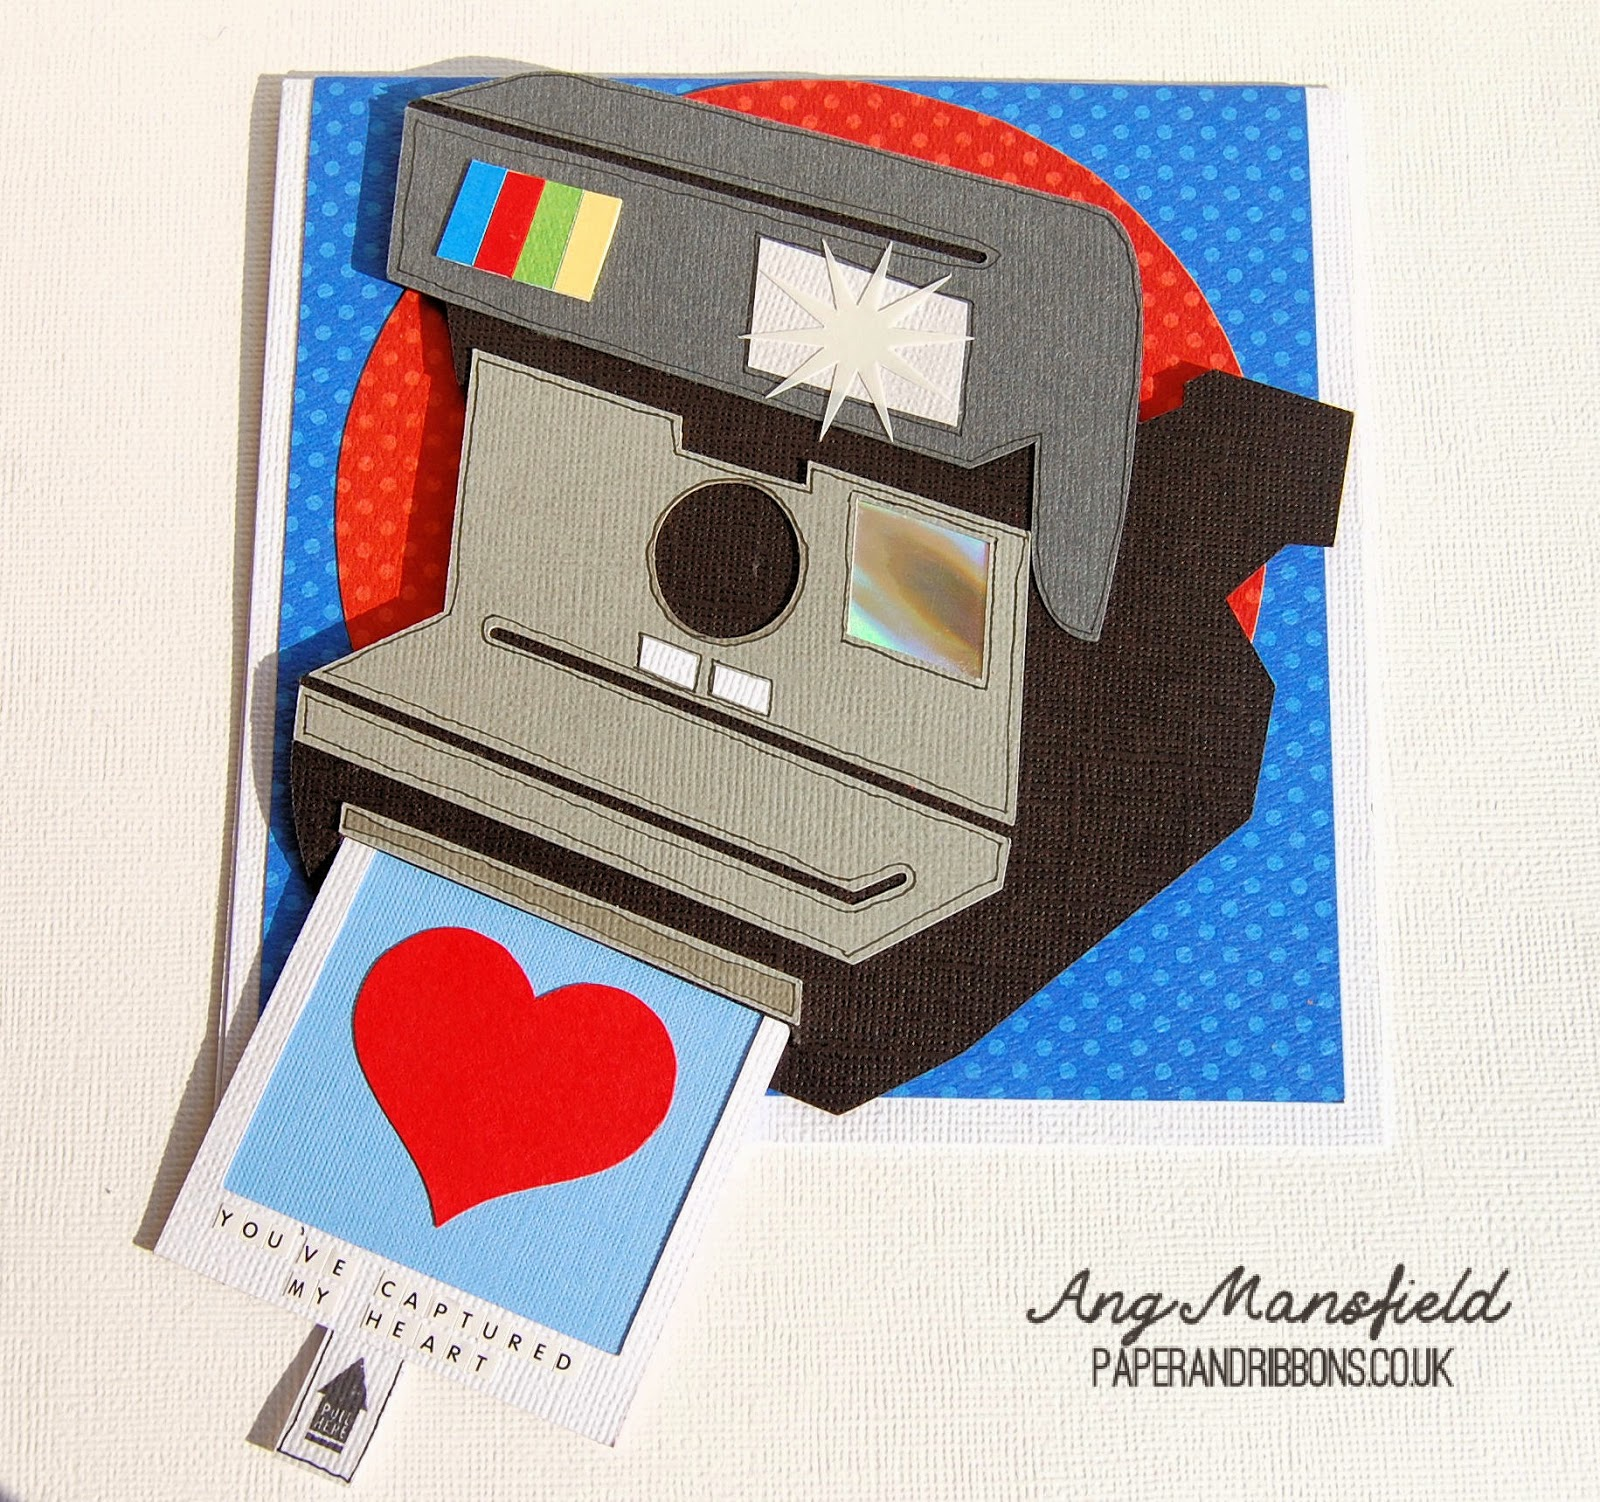 24 Valentine's Day Cards Round Up by Ang Mansfield of Paper and Ribbons